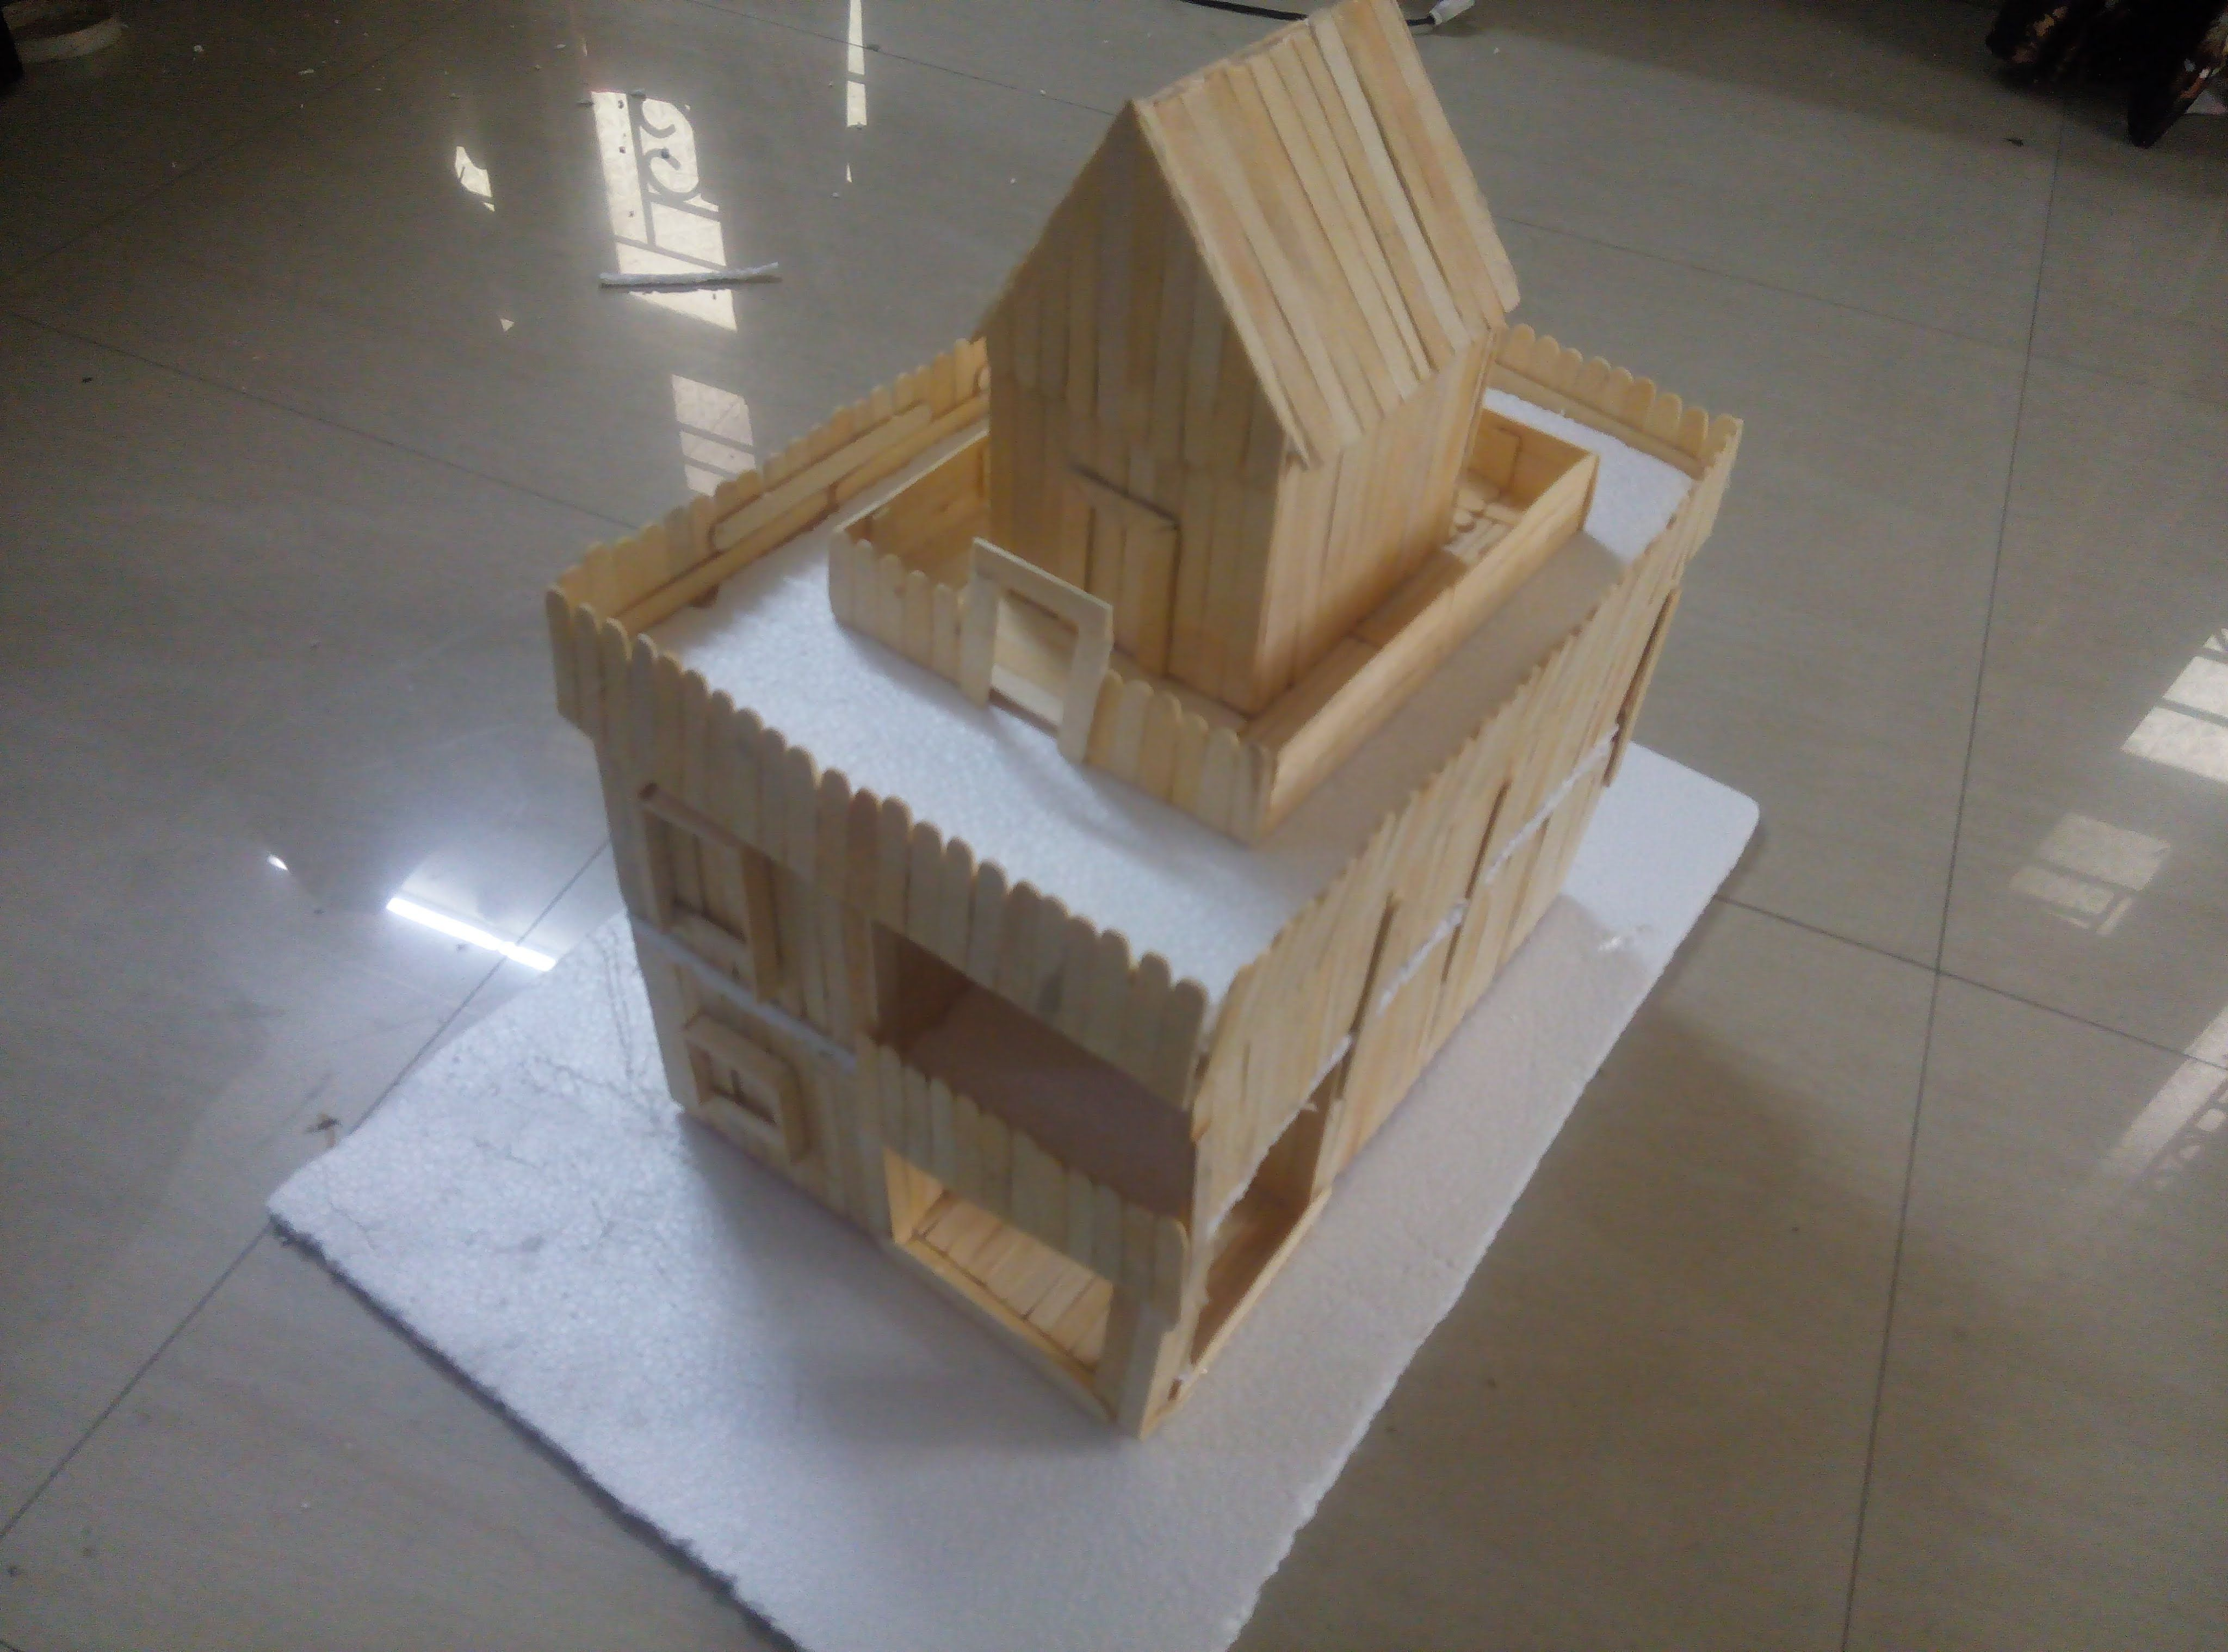 Arts and crafts sticks - How To Make A Duplex House Uisng Popsicle Sticks Ice Cream Sticks We Have Used Glue Gun Glue Sticks And Ice Cream Sticks Popsicle Sticks To Do The Craft